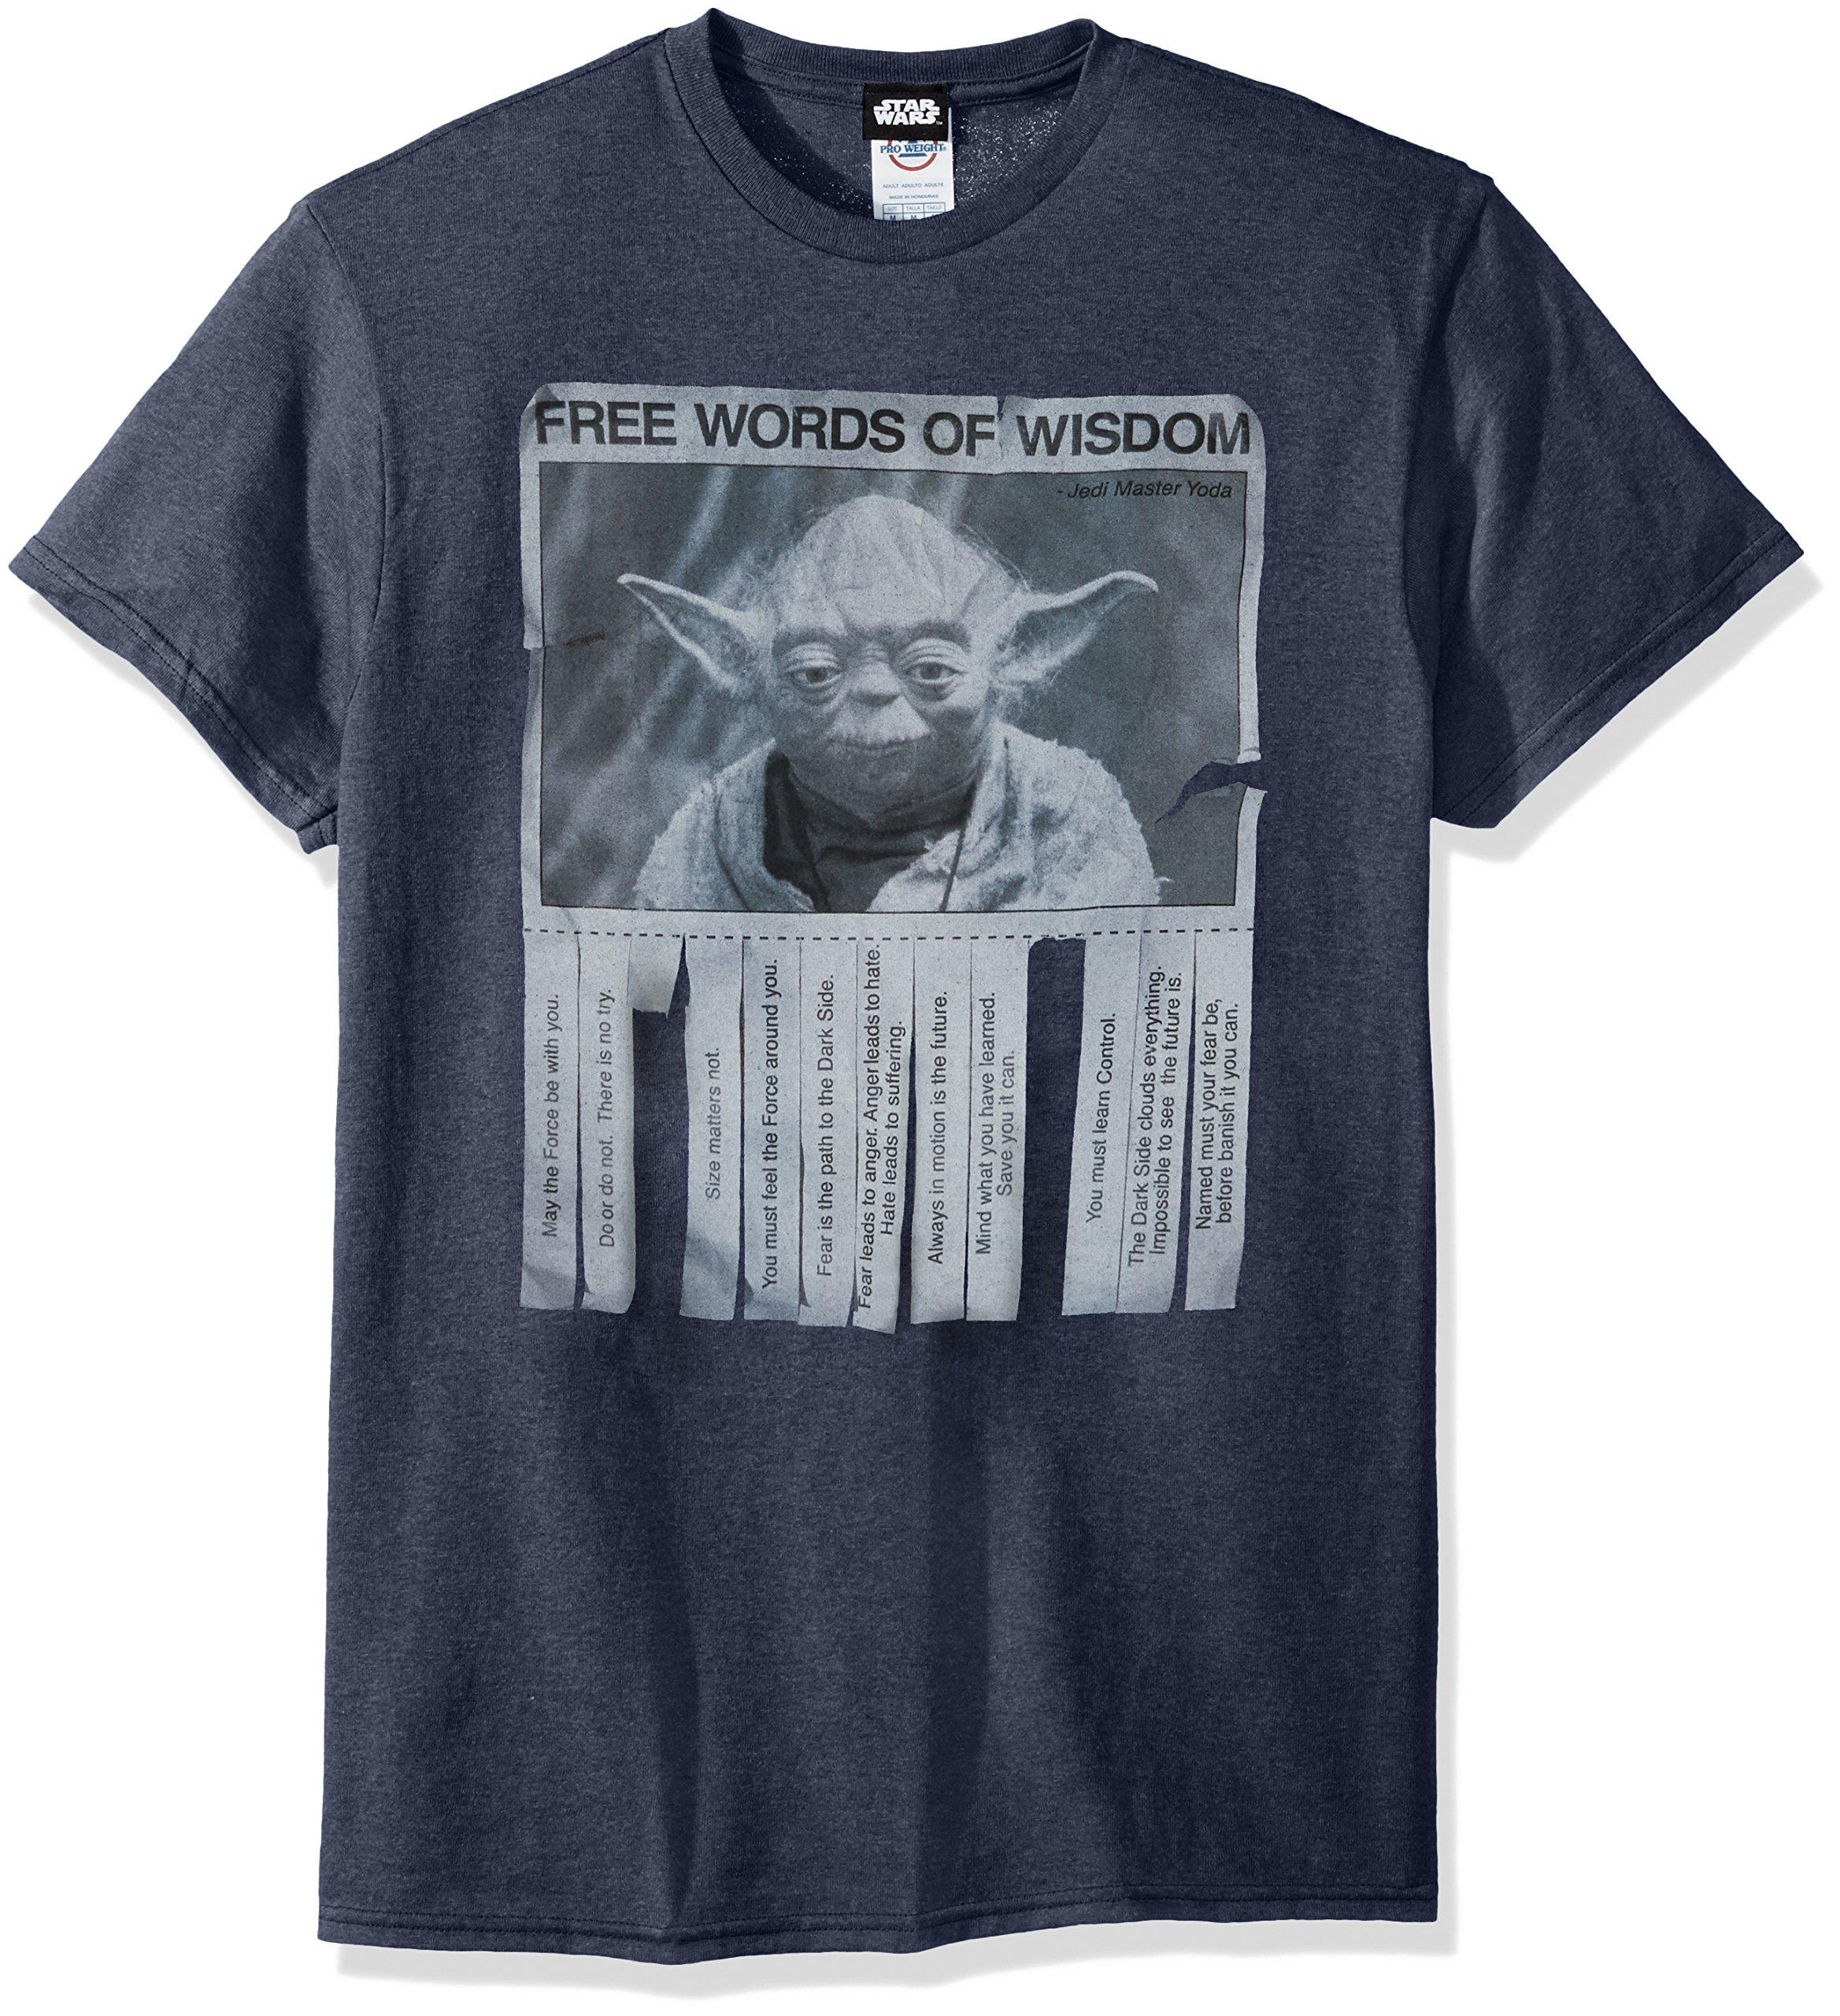 Star Wars Men's Words Of Wisdom T-Shirt, Navy Heather, Large by Star Wars (Image #1)